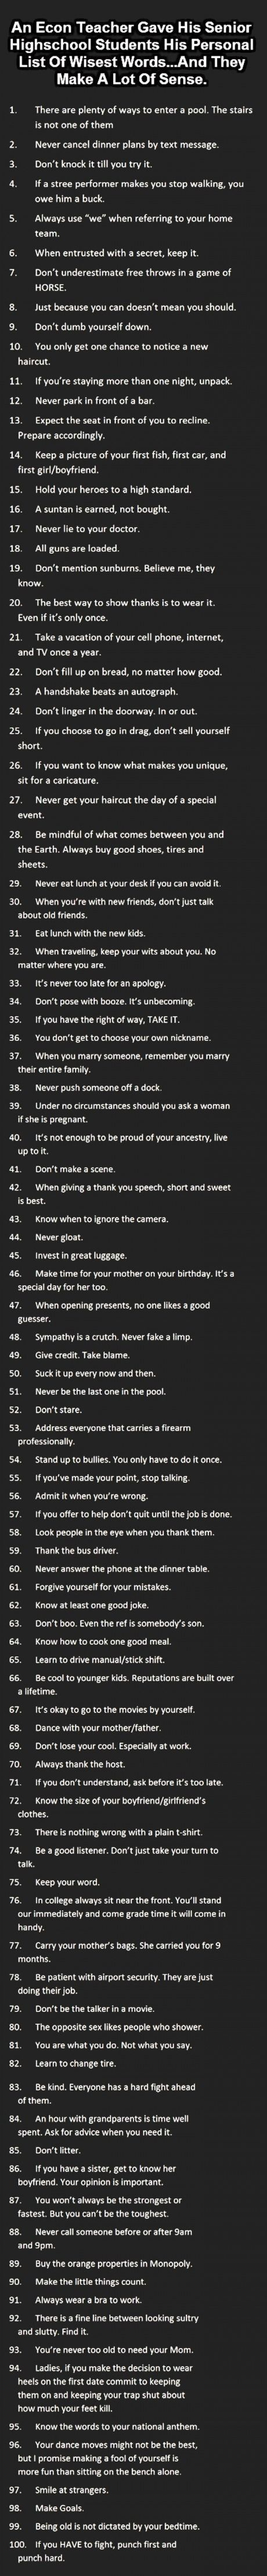 Some really sound advice here.. I know a few folks who could do with learning this list.. Need to adopt some of them myself, everyone can be improved upon :)